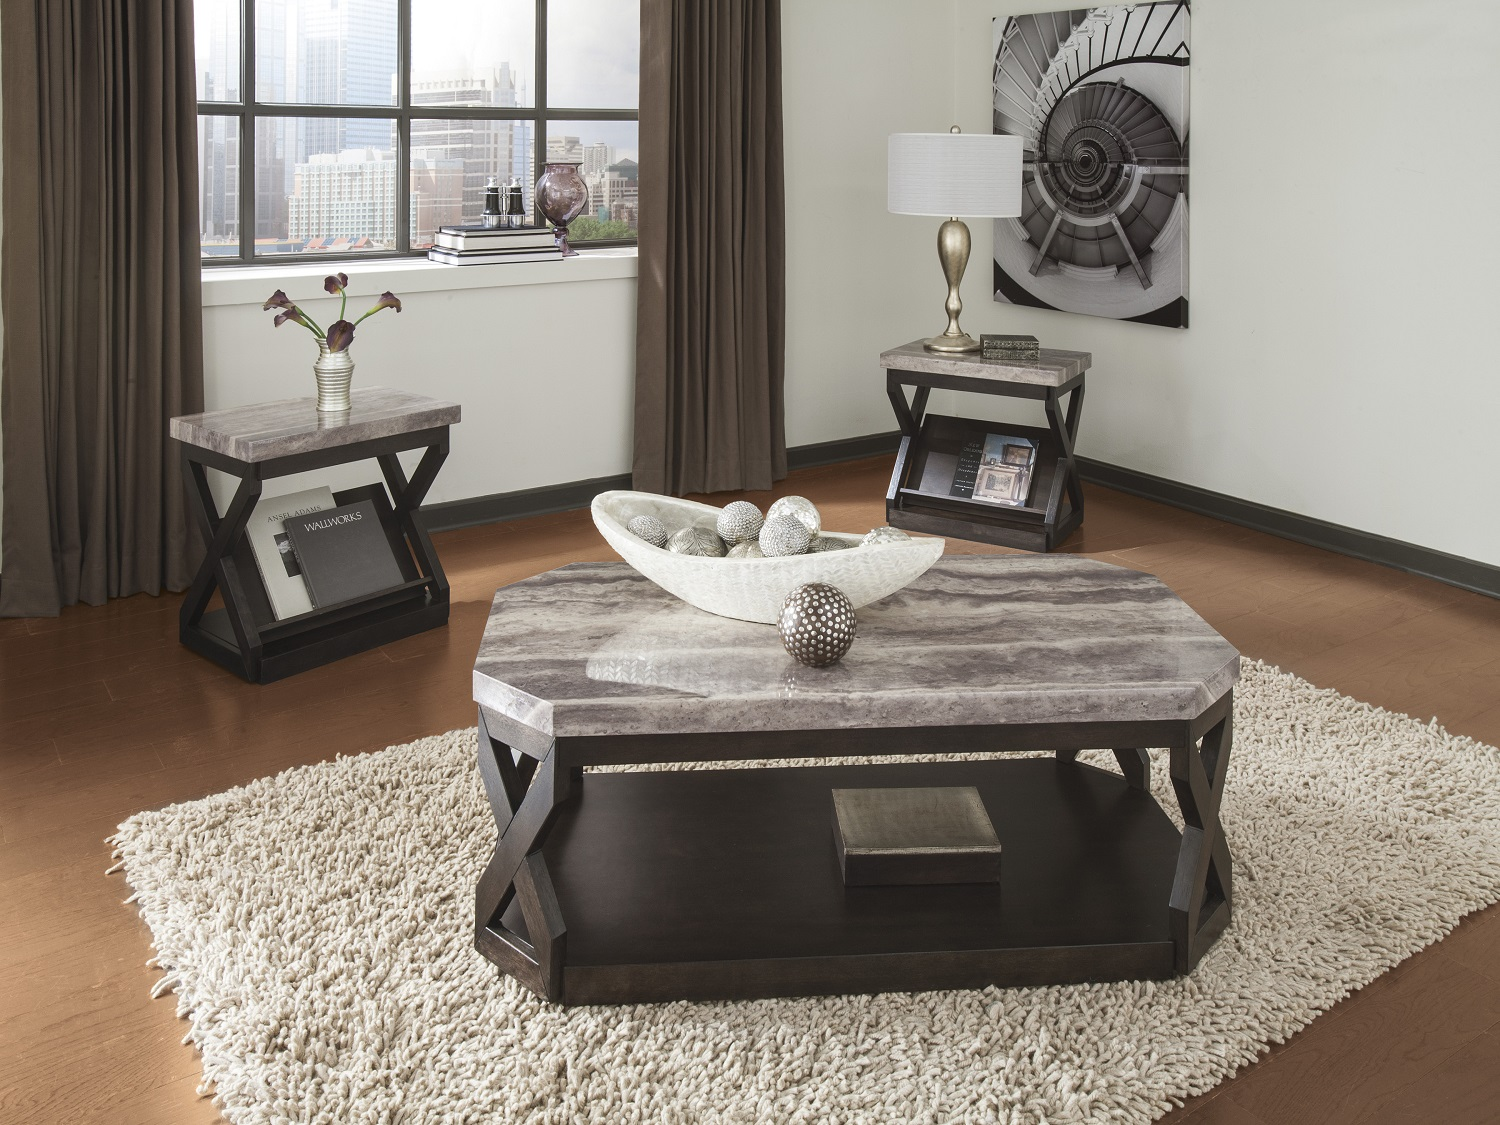 Radilyn 3PC Table Set, T568-13, Coffee Table Set (3PC) by Midha Furniture to Brampton, Mississauga, Etobicoke, Toronto, Scraborough, Caledon, Oakville, Markham, Ajax, Pickering, Oshawa, Richmondhill, Kitchener, Hamilton, Cambridge, Waterloo and GTA area